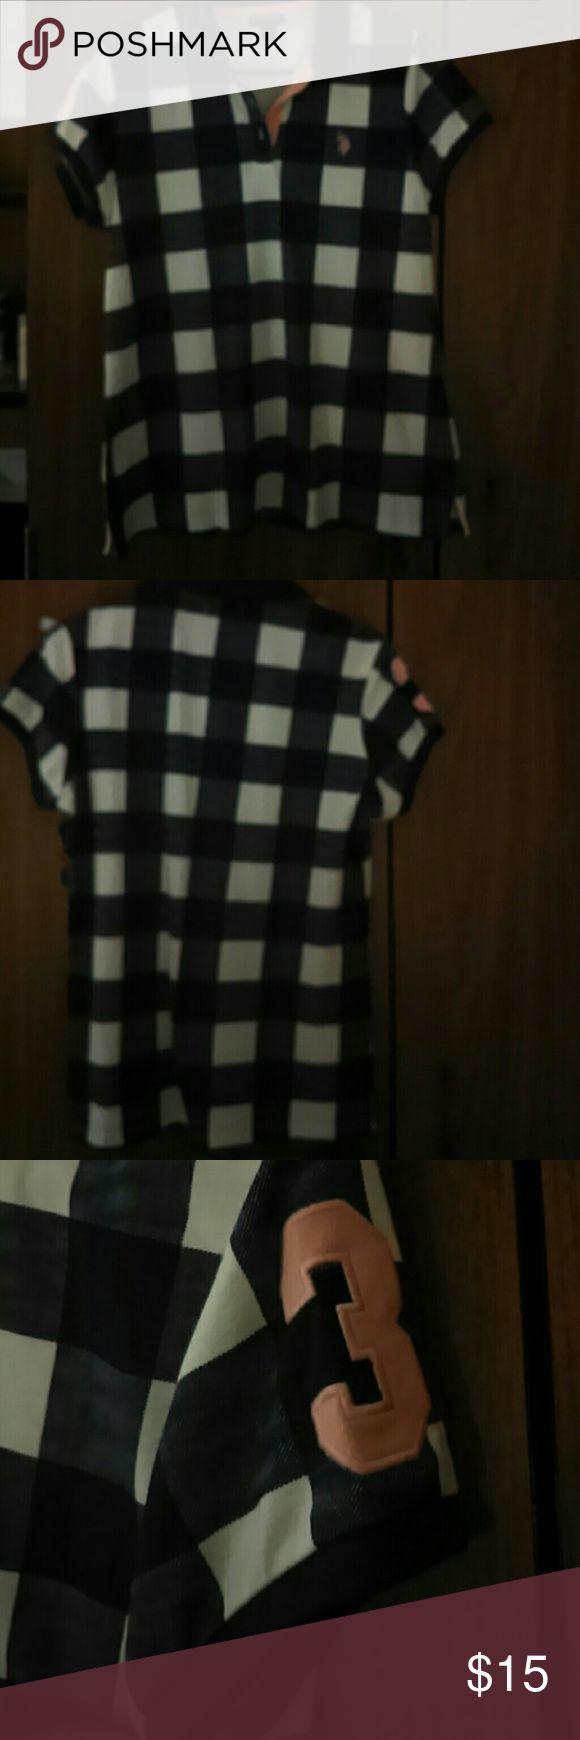 Cute buffalo check print polo shirt Never been worn. New without Tag. U.S. Polo Assn. Tops Button Down Shirts